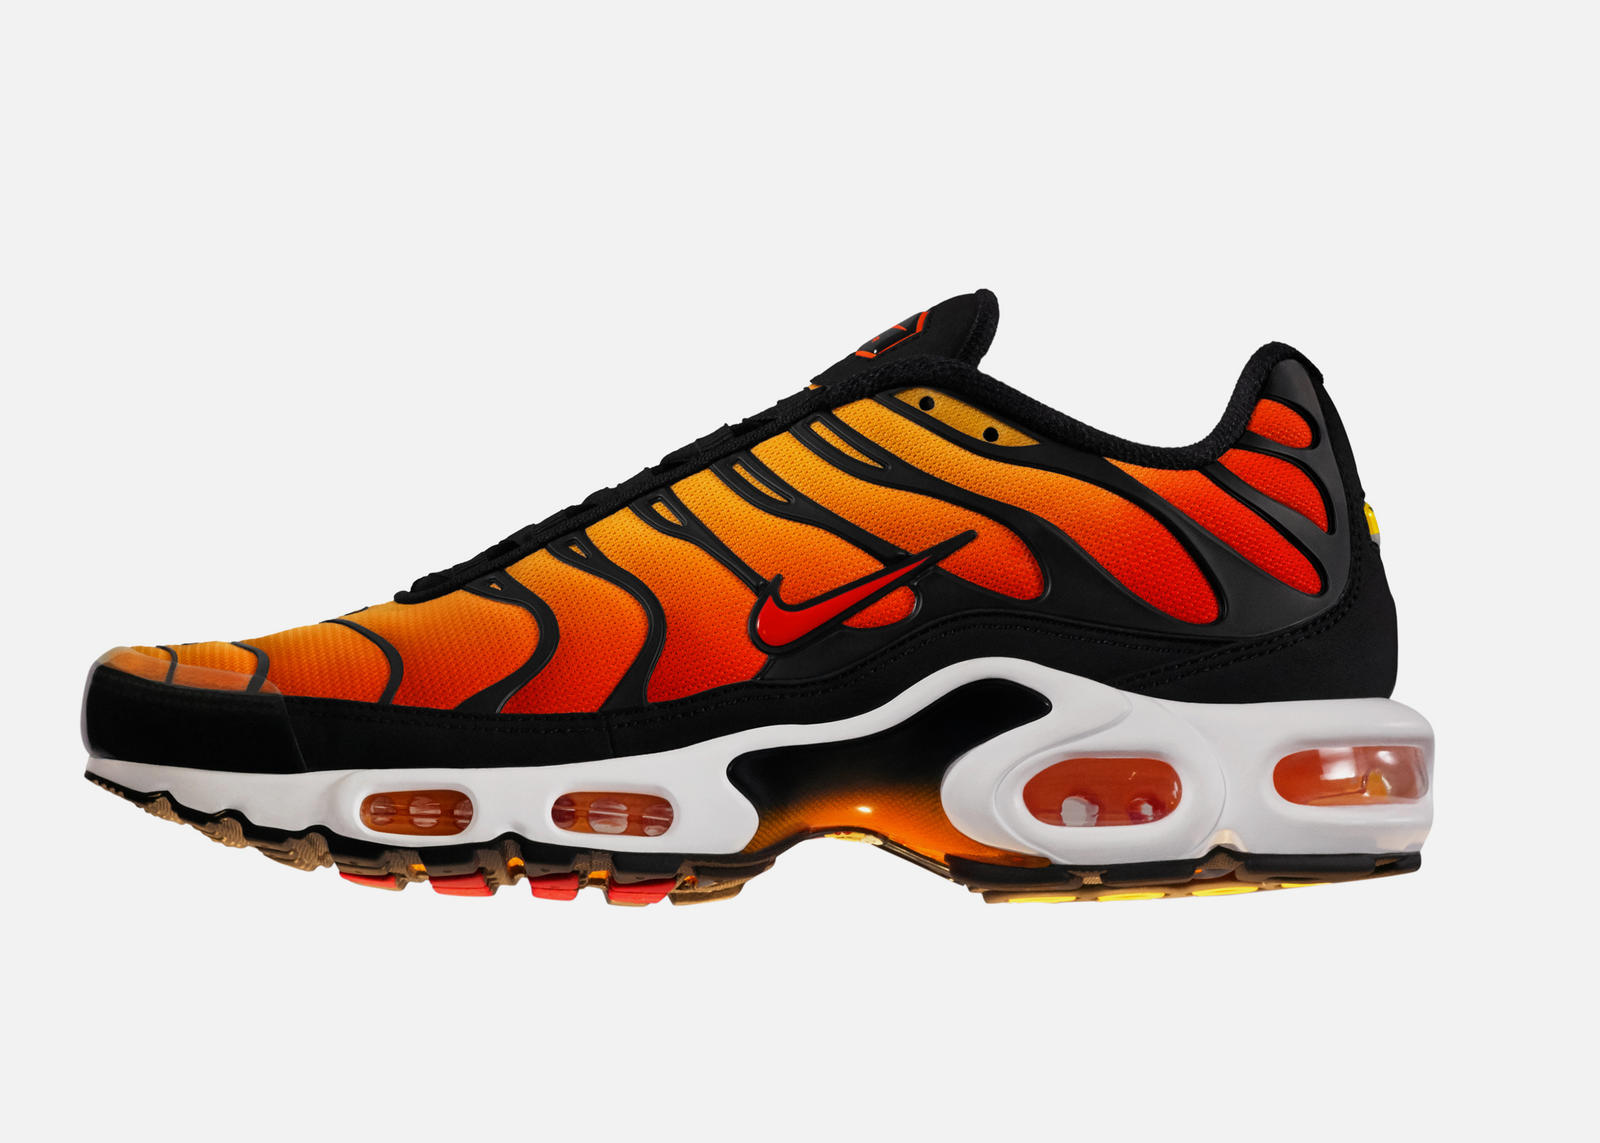 c58f8b48db The Untold Story of the Nike Air Max Plus 19